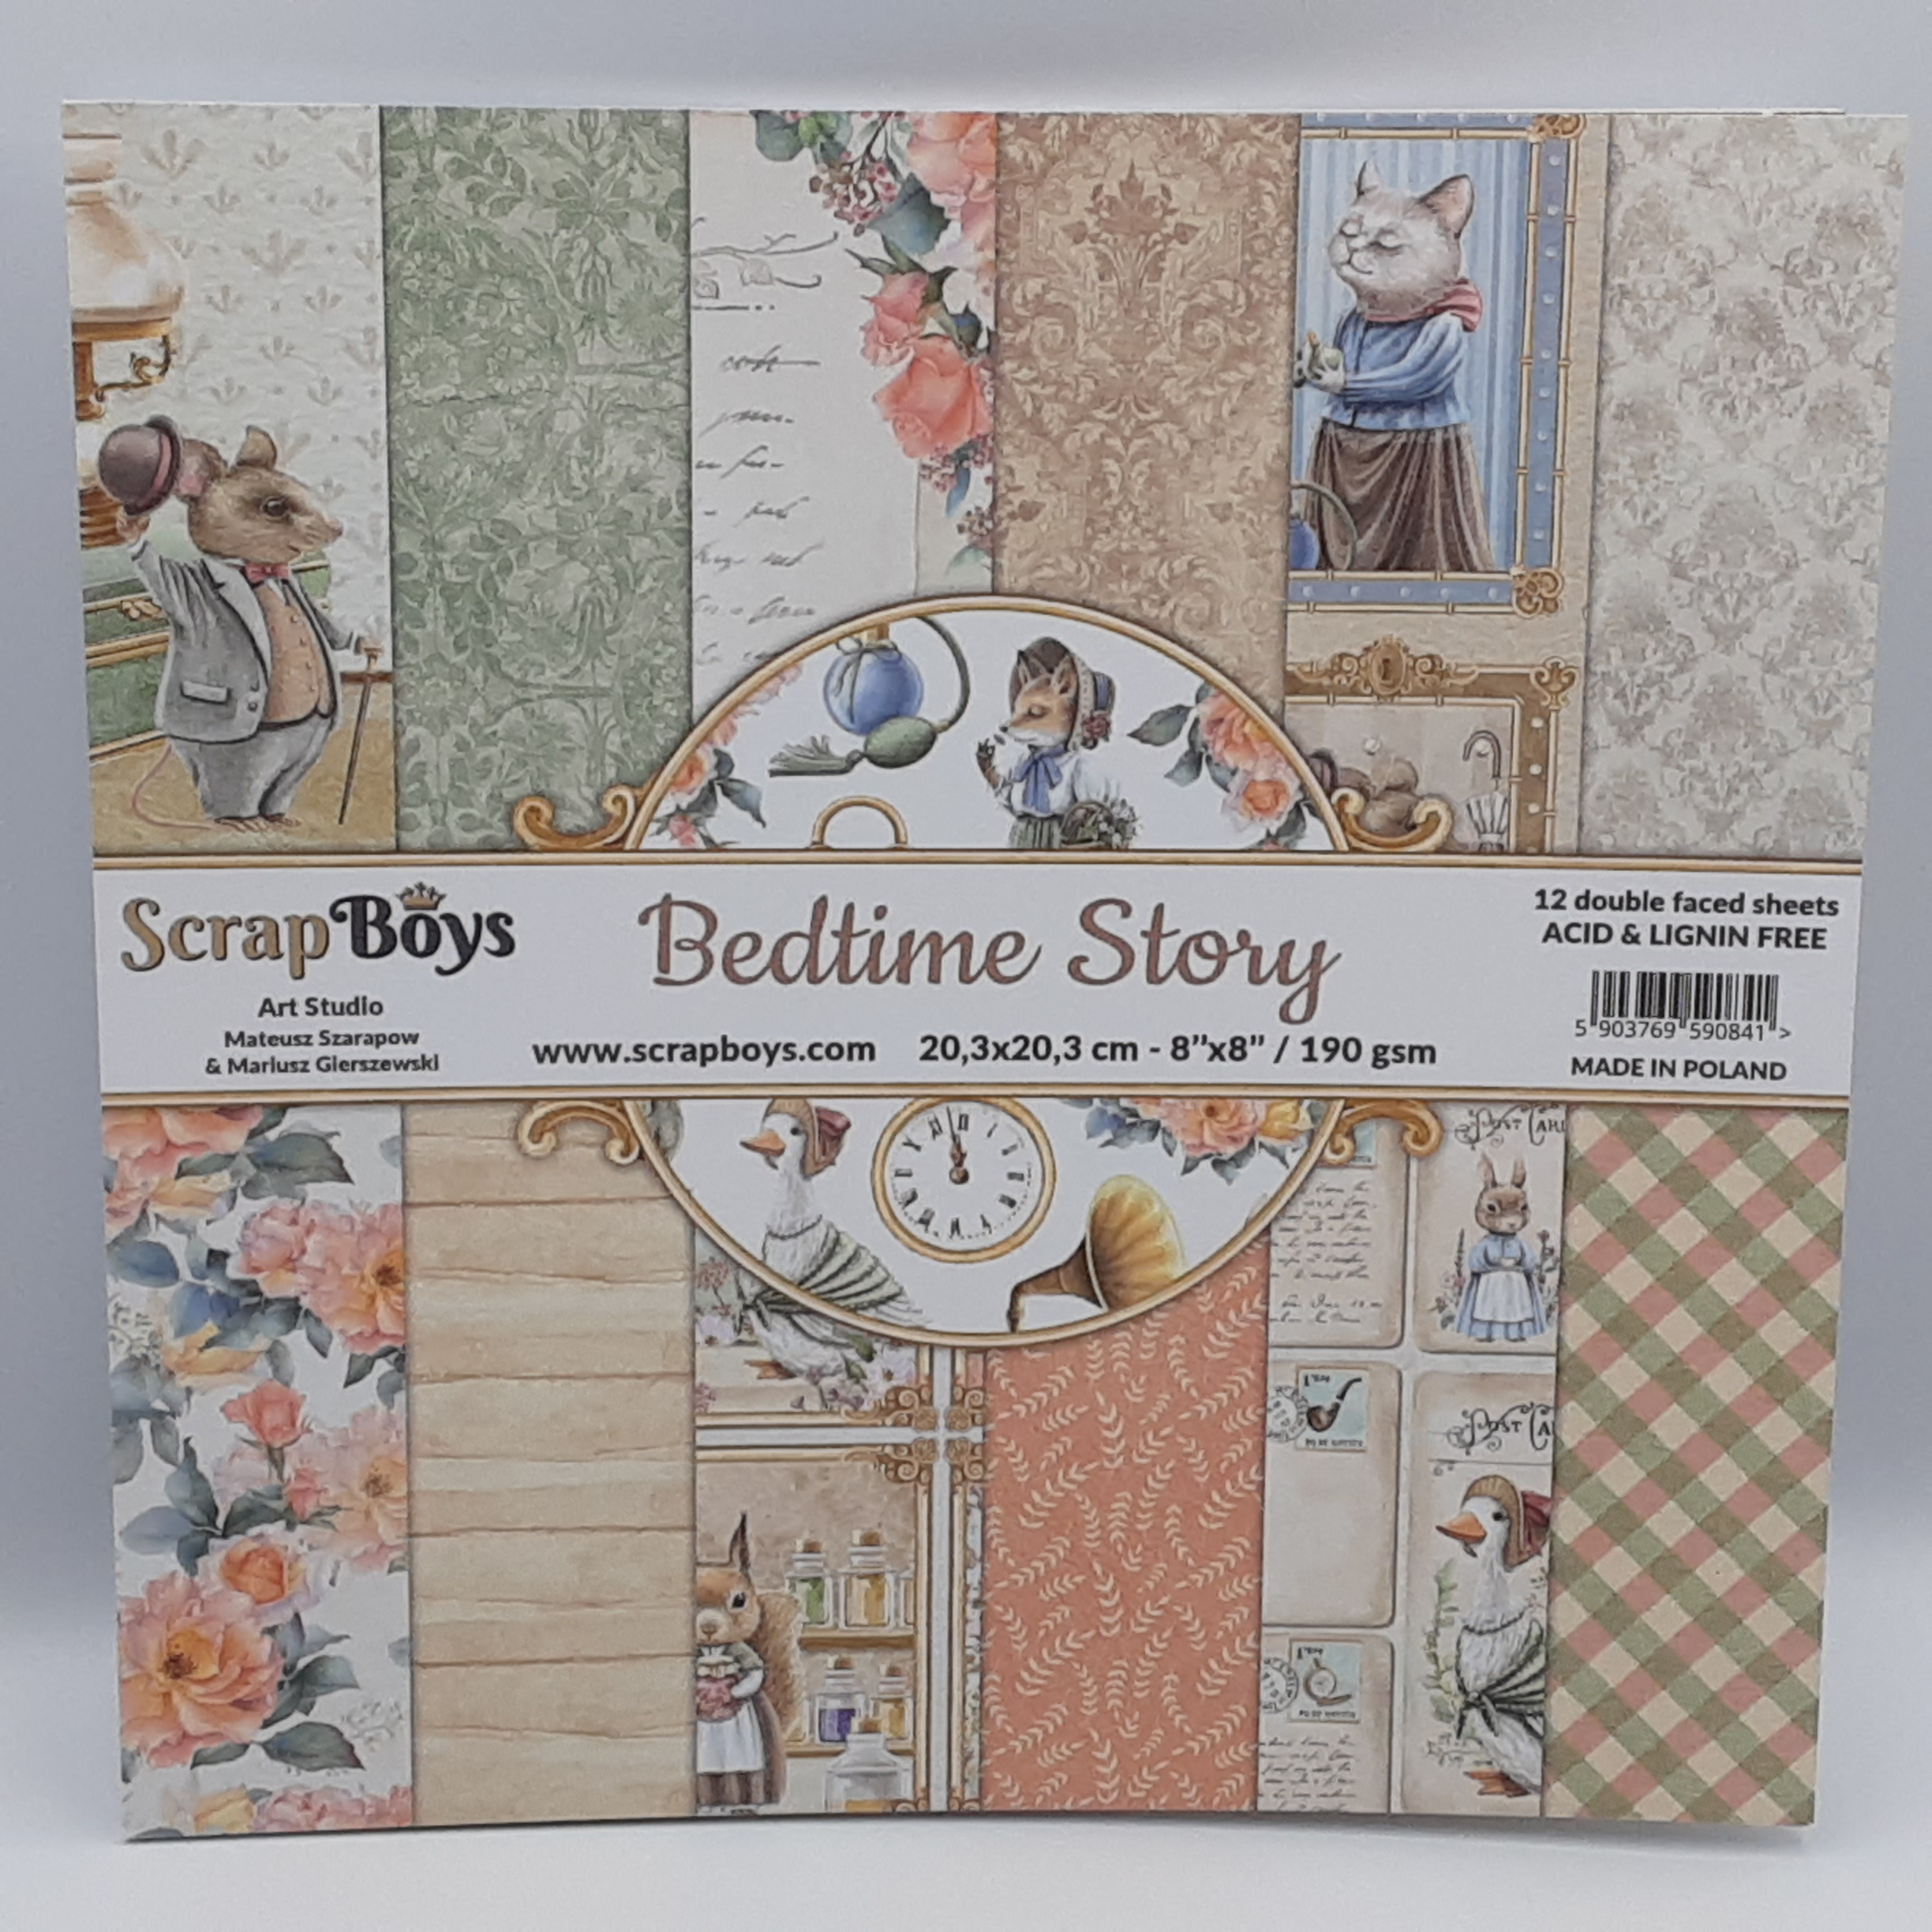 Bedtime story paperpad 8